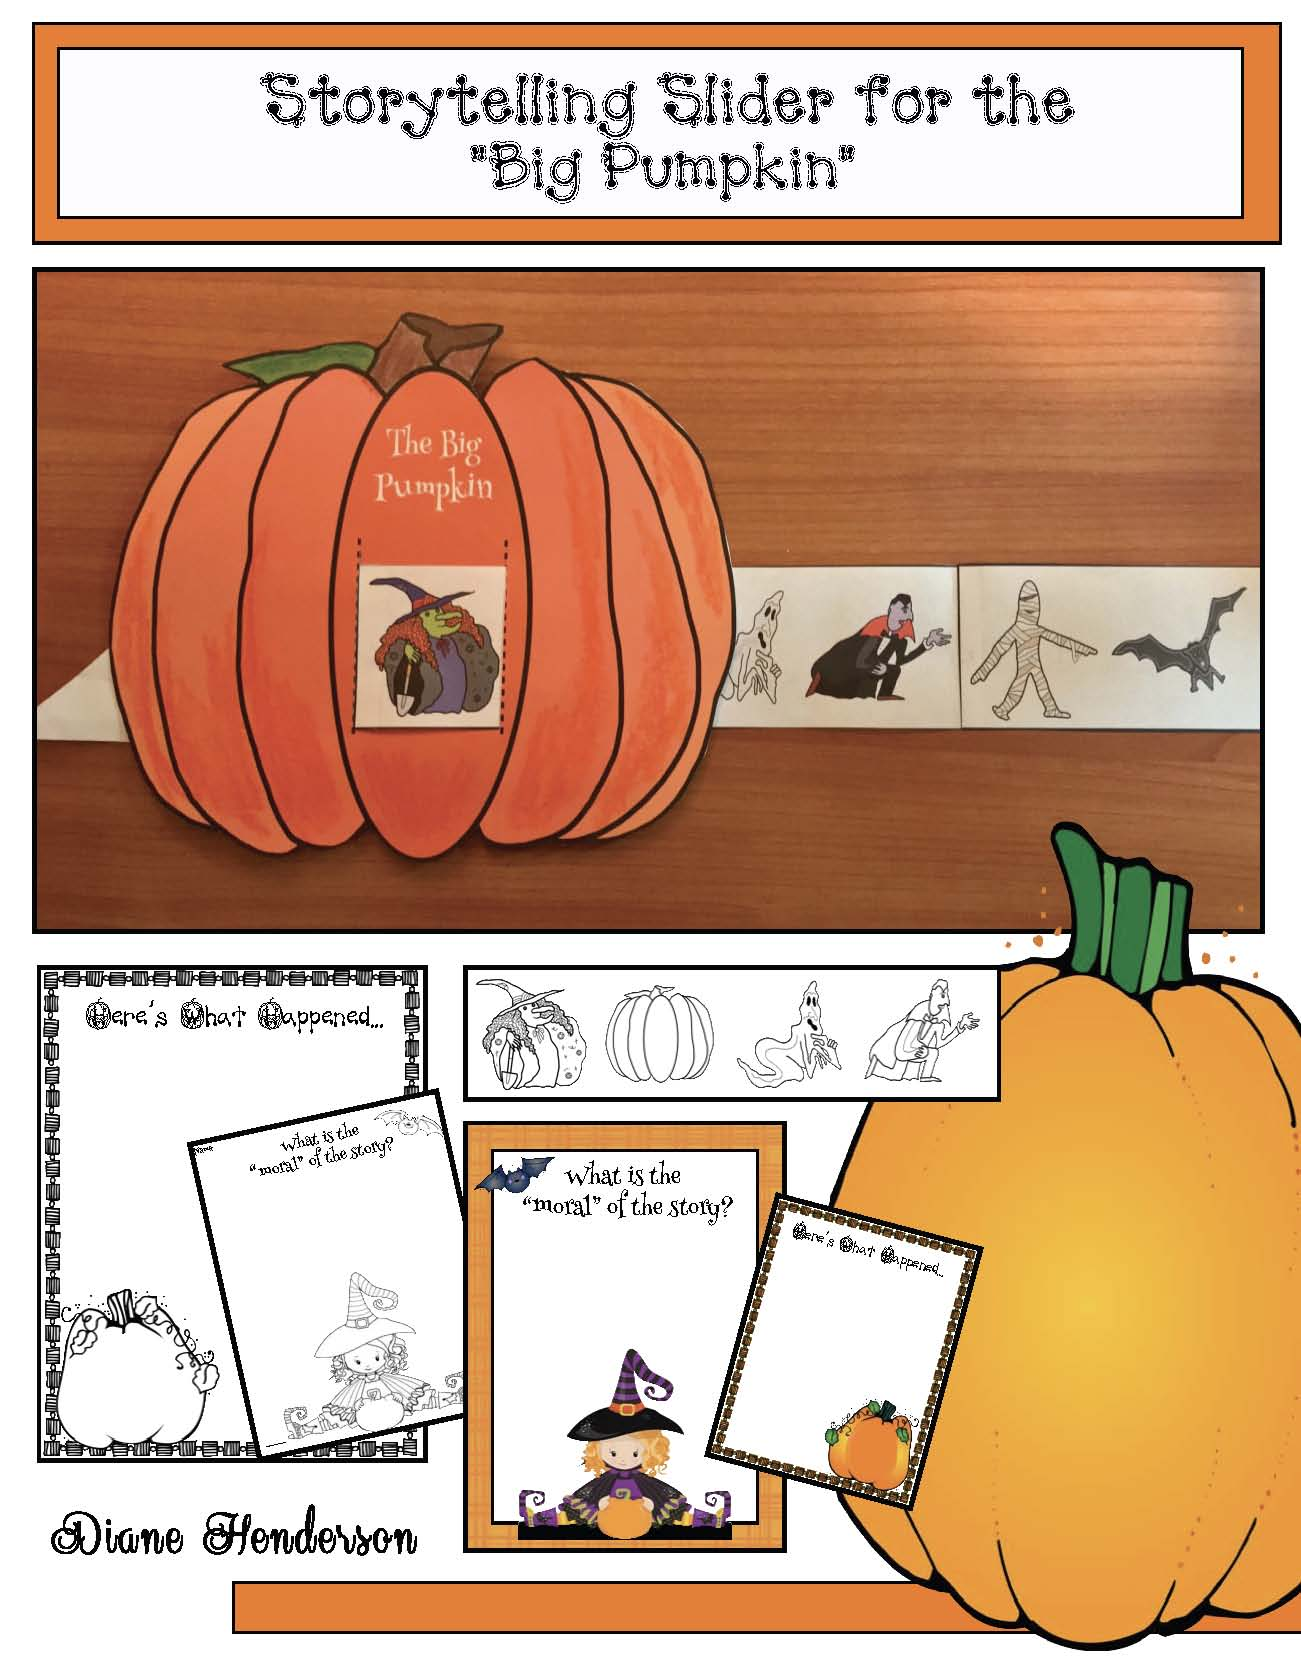 pumpkin crafts, halloween crafts, retelling a story activities, sequencing a story activities, activities to go with Big Pumpkin, Halloween party ideas,